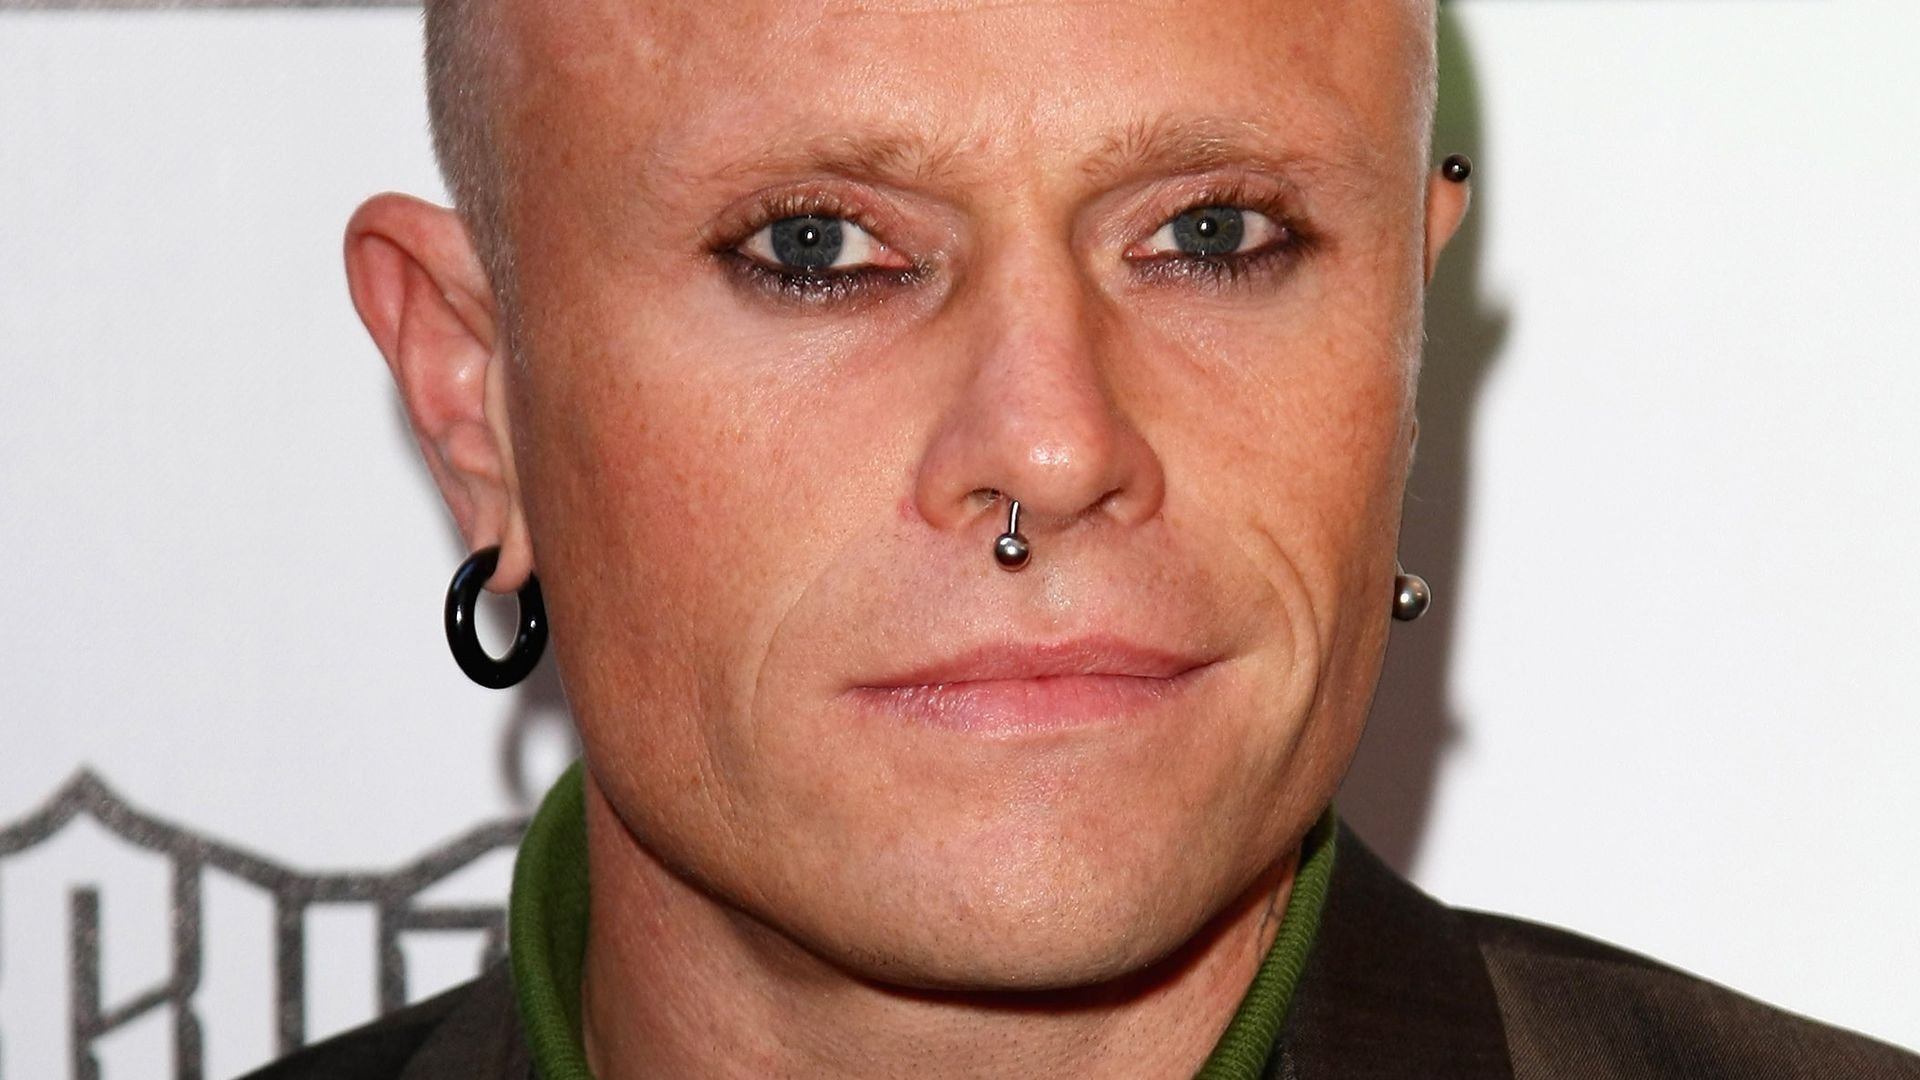 Keith Flint Nationality, Ethnicity, and Death